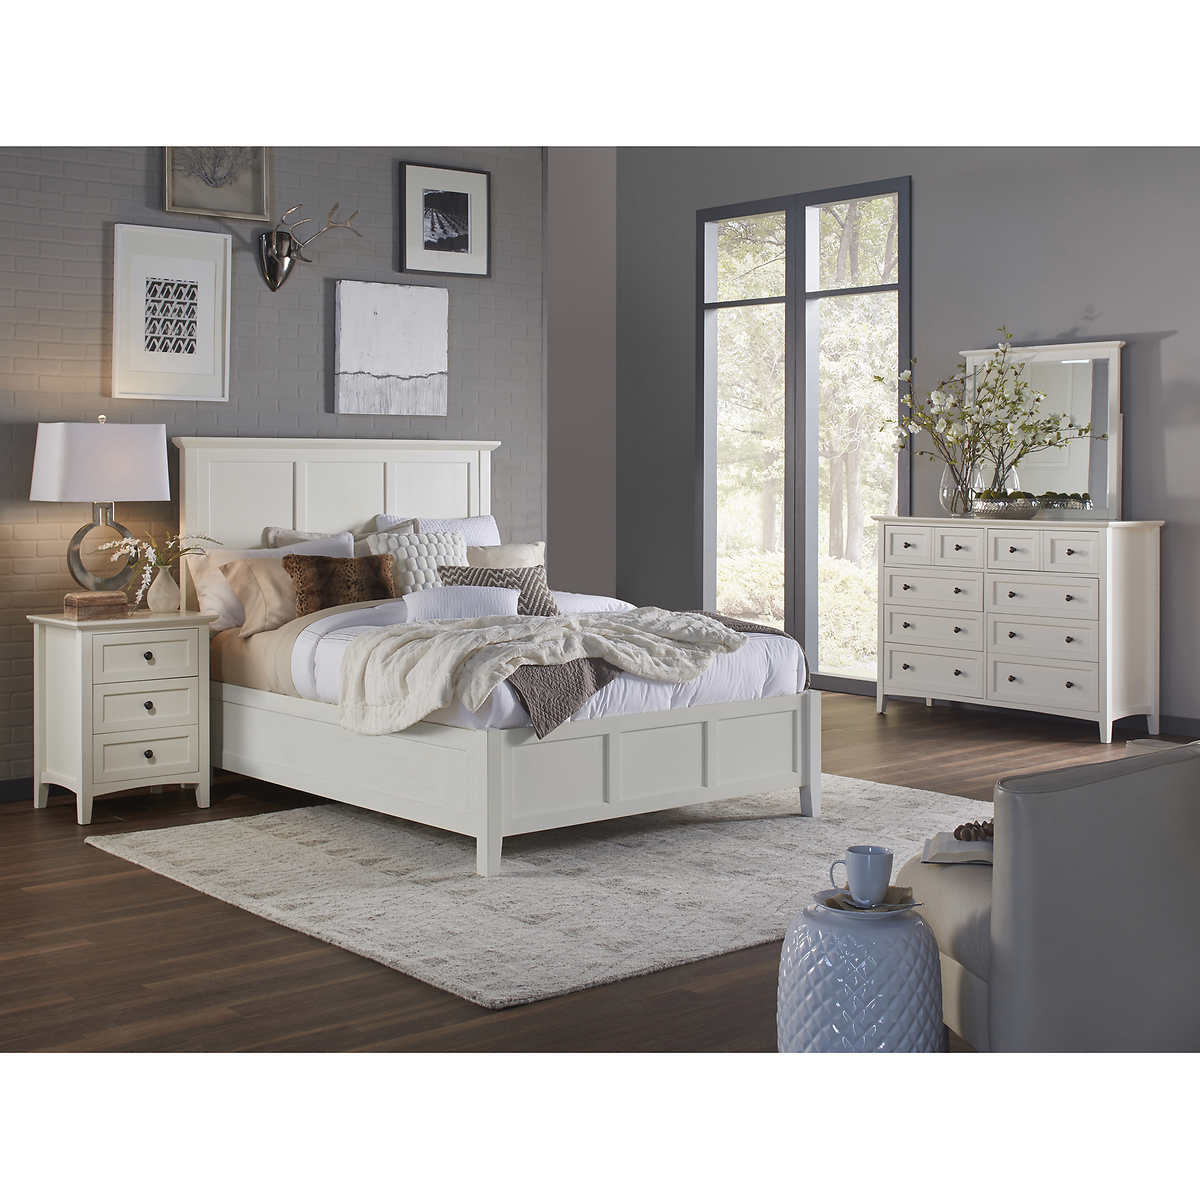 ikea hemnes bedroom set beauteous hemnes bed frame queen ikea design ideas. Black Bedroom Furniture Sets. Home Design Ideas